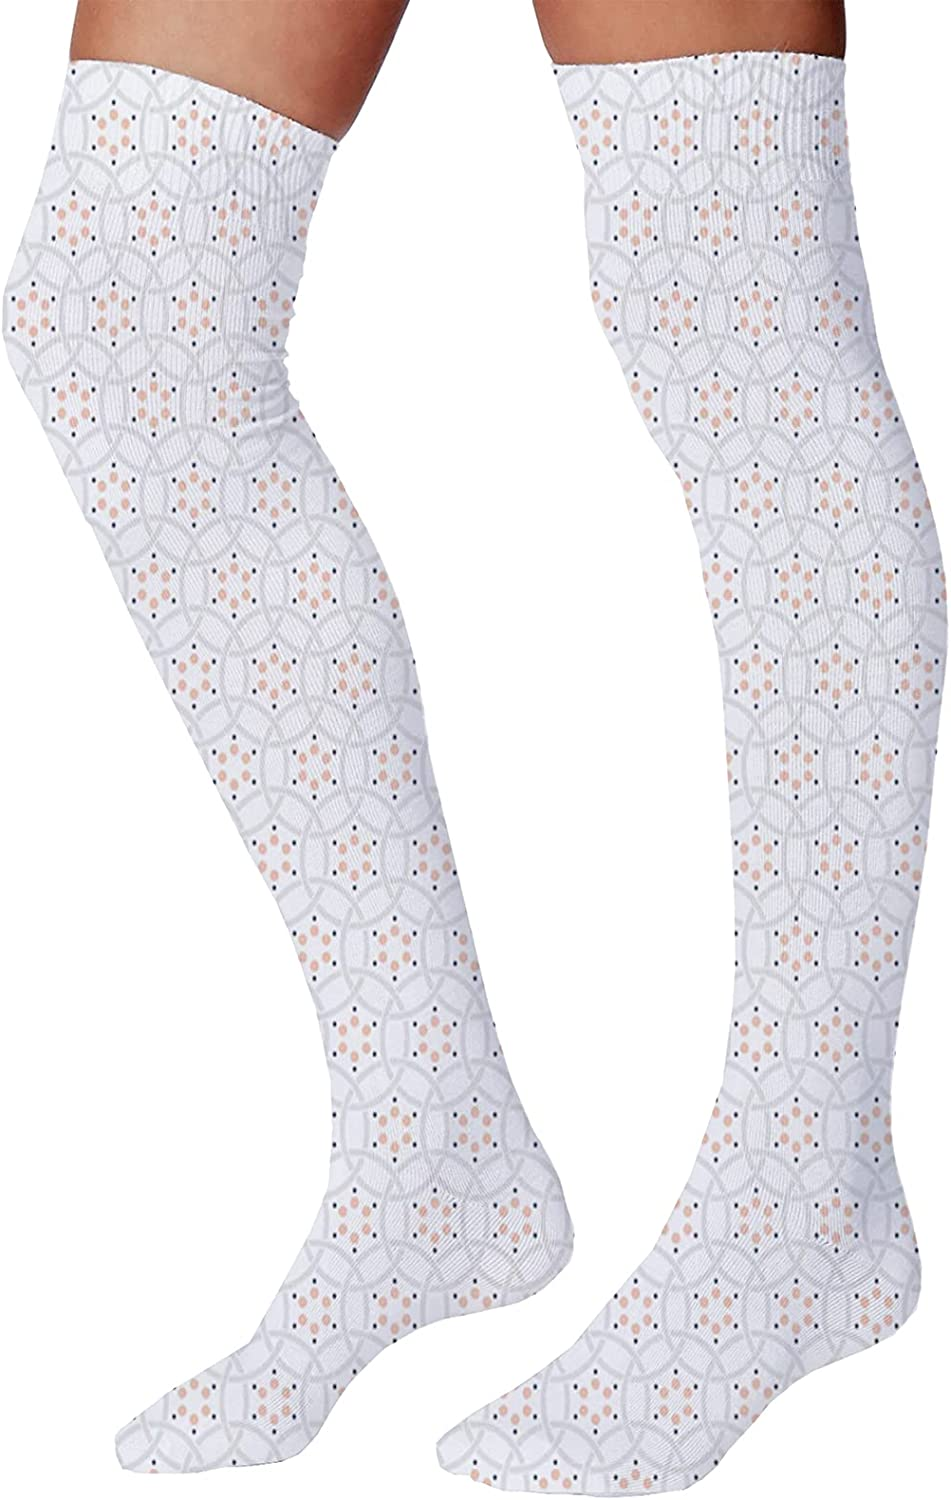 Men's and Women's Fun Socks,Abstract Pastel Pattern with Overlapping Chaotic Spots and Ring Shapes